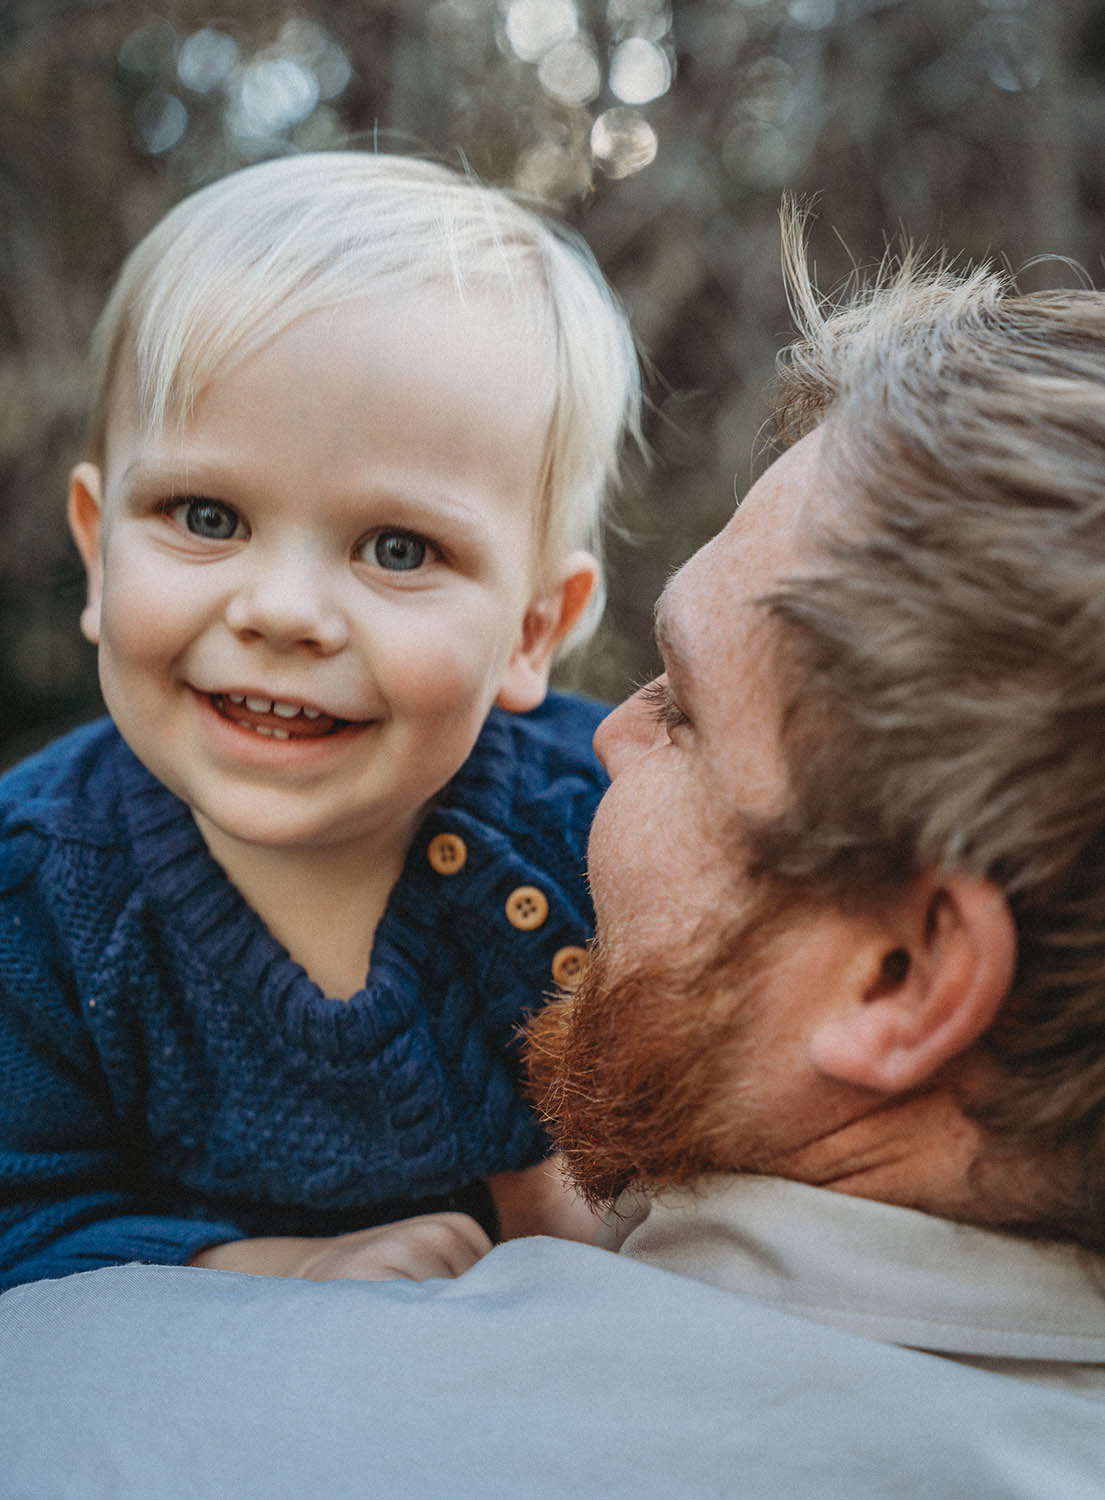 Family Photography - Father holding son